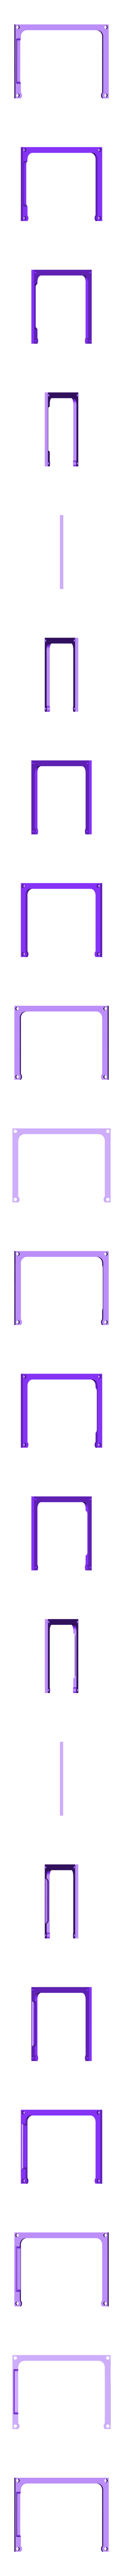 Display_Support_Frame.stl Download free STL file RepRapDiscount Full Graphic Smart Controller Case • 3D printer template, MightyNozzle